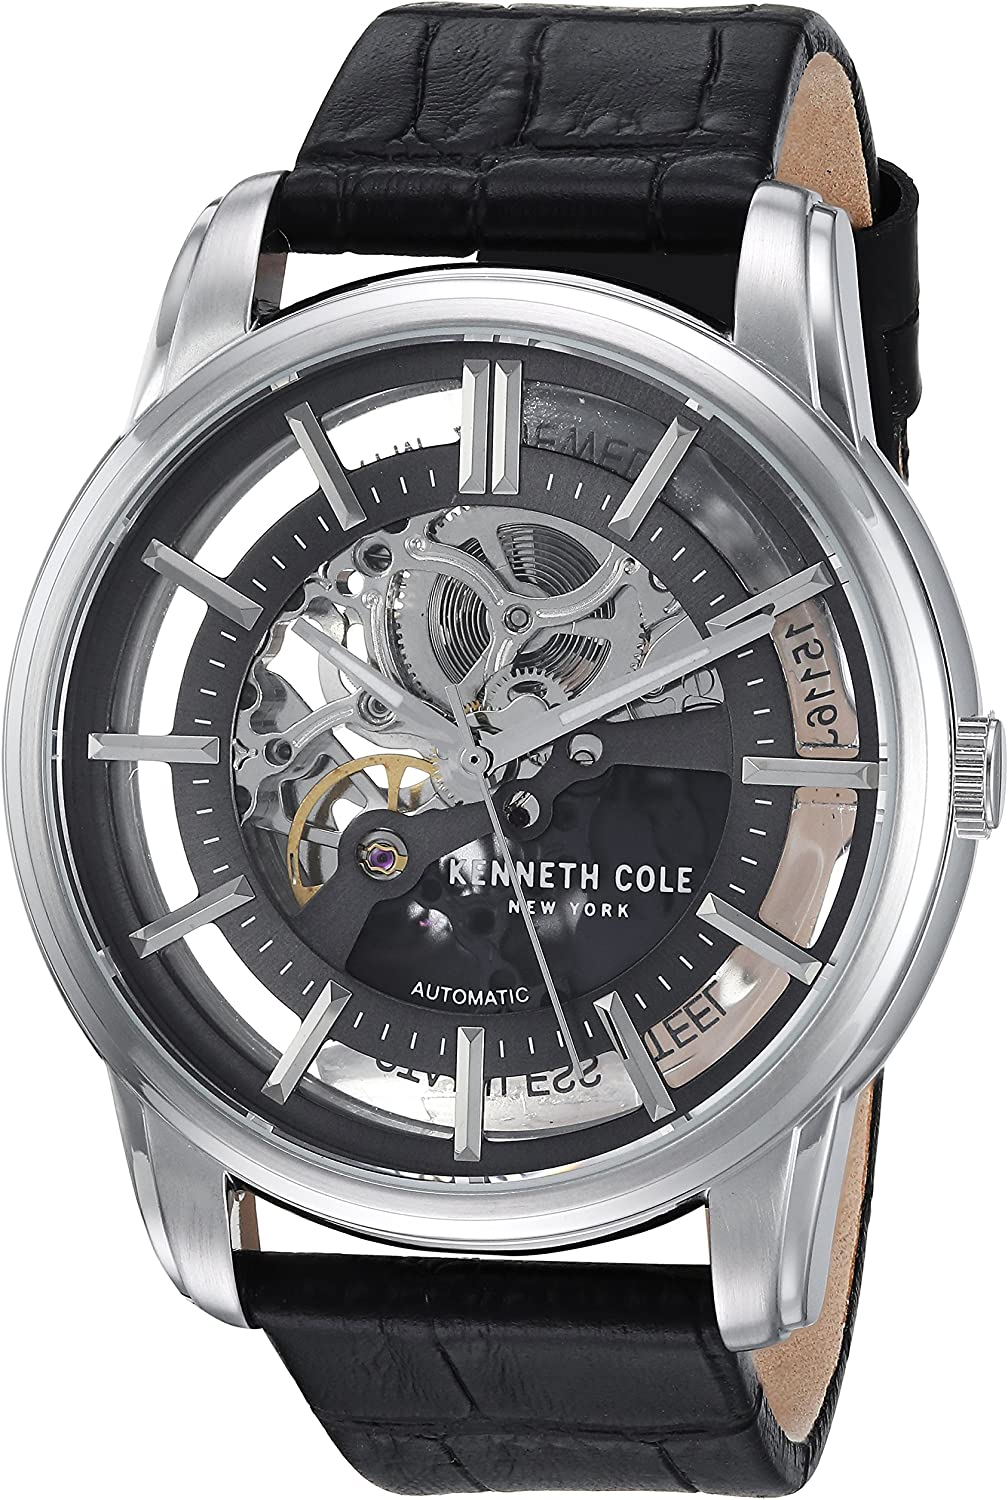 Kenneth Cole New York Men s Auto Automatic Stainless Steel and Leather Dress Watch